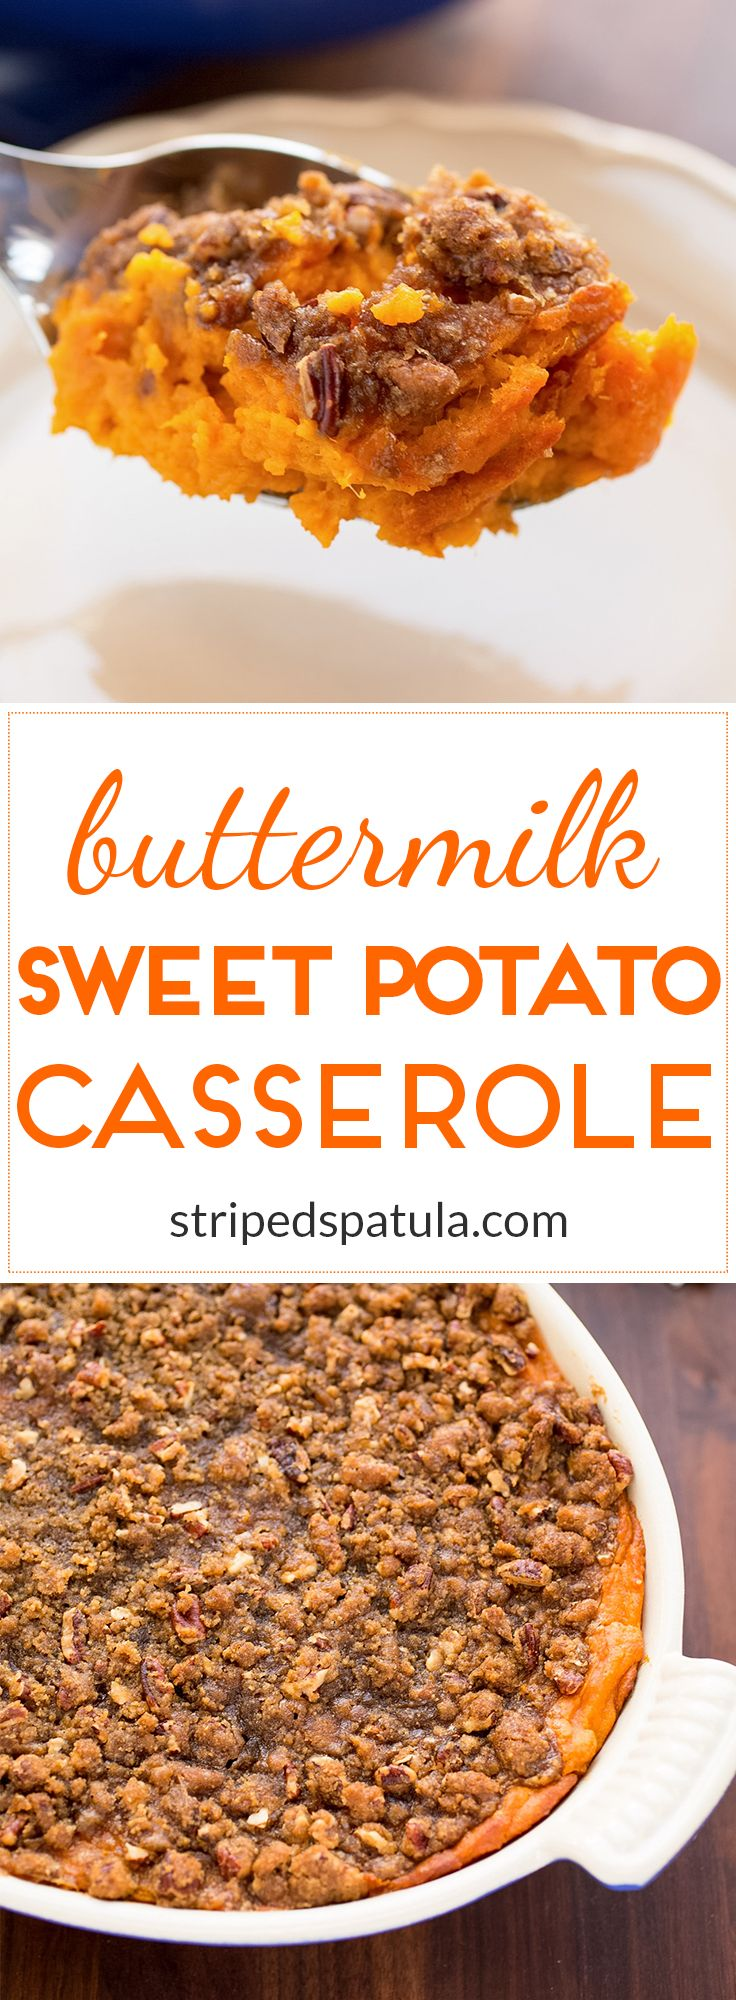 A creamy whipped Sweet Potato Casserole with buttermilk and cinnamon. Topped with crunchy pecan praline!